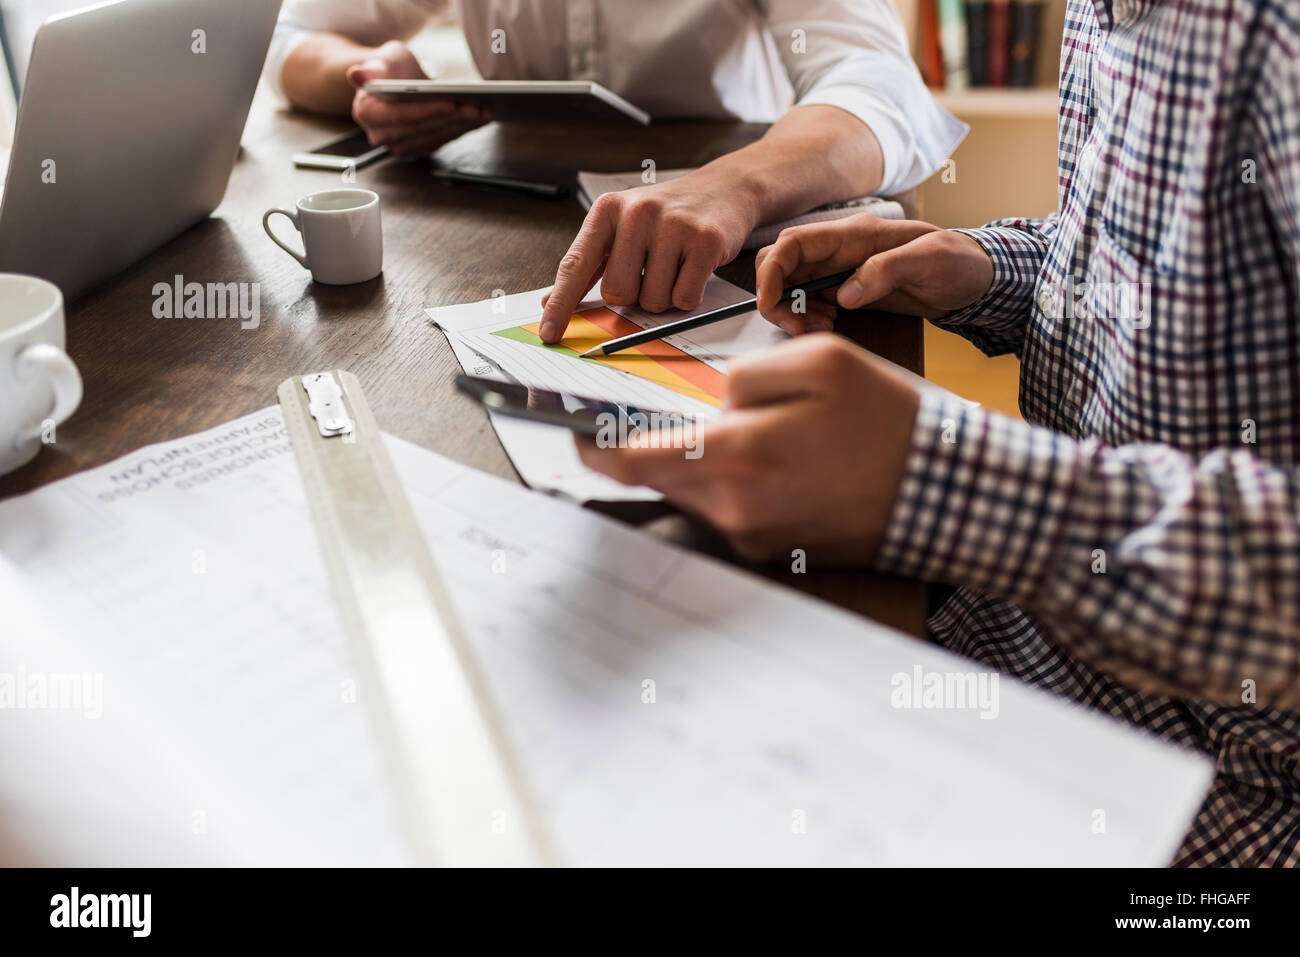 Computer Diagram Stock Photos Images Alamy Glass On The Electronic Schematic Diagramideal Technology Background Colleagues At Desk With Smartphone And Construction Plan Image